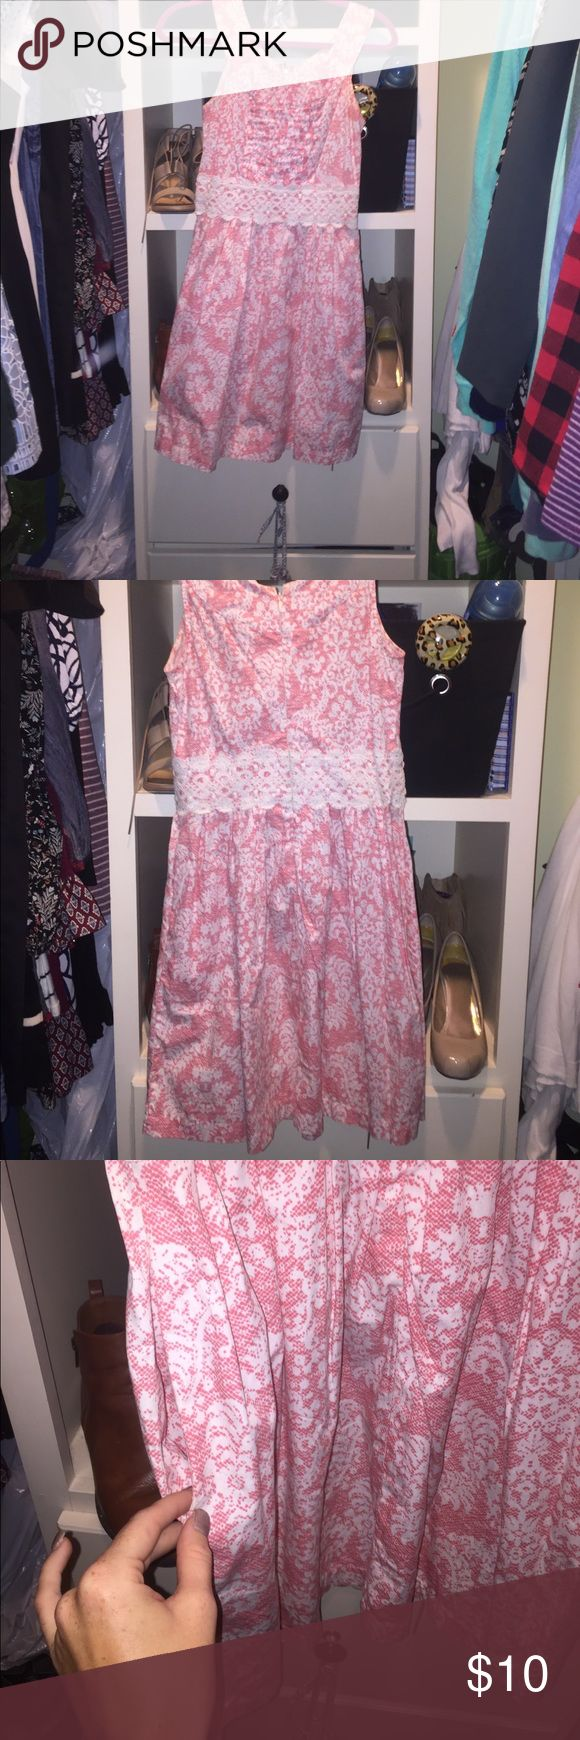 Sundress I hate I'm selling this dress because it's one of my FAVORITES! But I've outgrown it. 😢 Coral and white, also has pockets! Bought from Belk and I'll negotiate 💗 Red Camel Dresses Midi